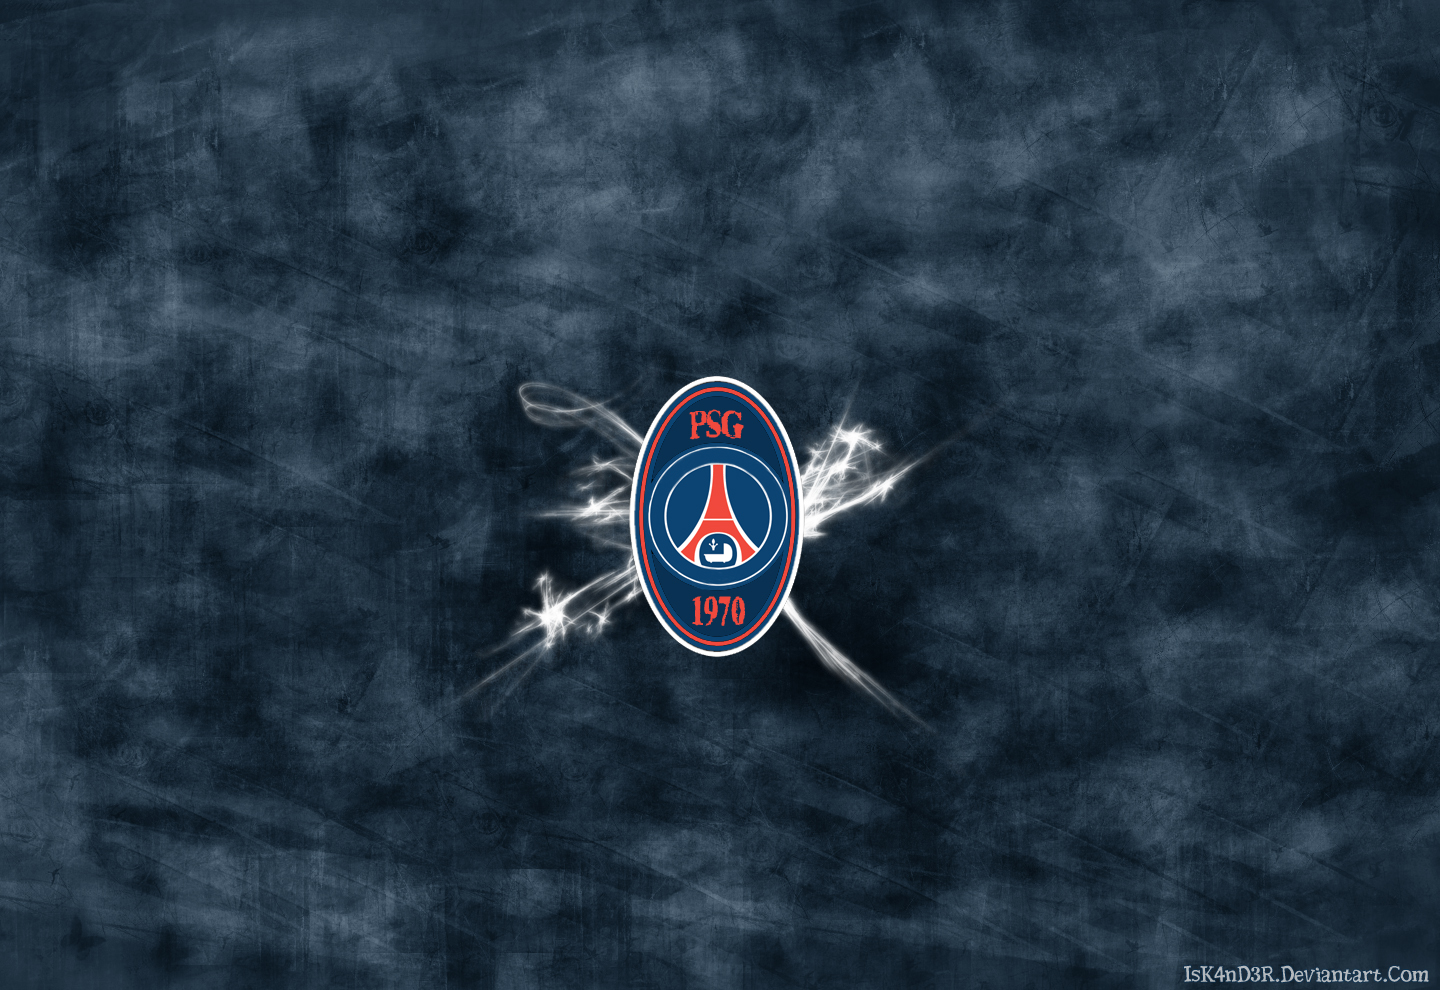 Psg Wallpaper By Isk4nd3r On Deviantart 1440x990